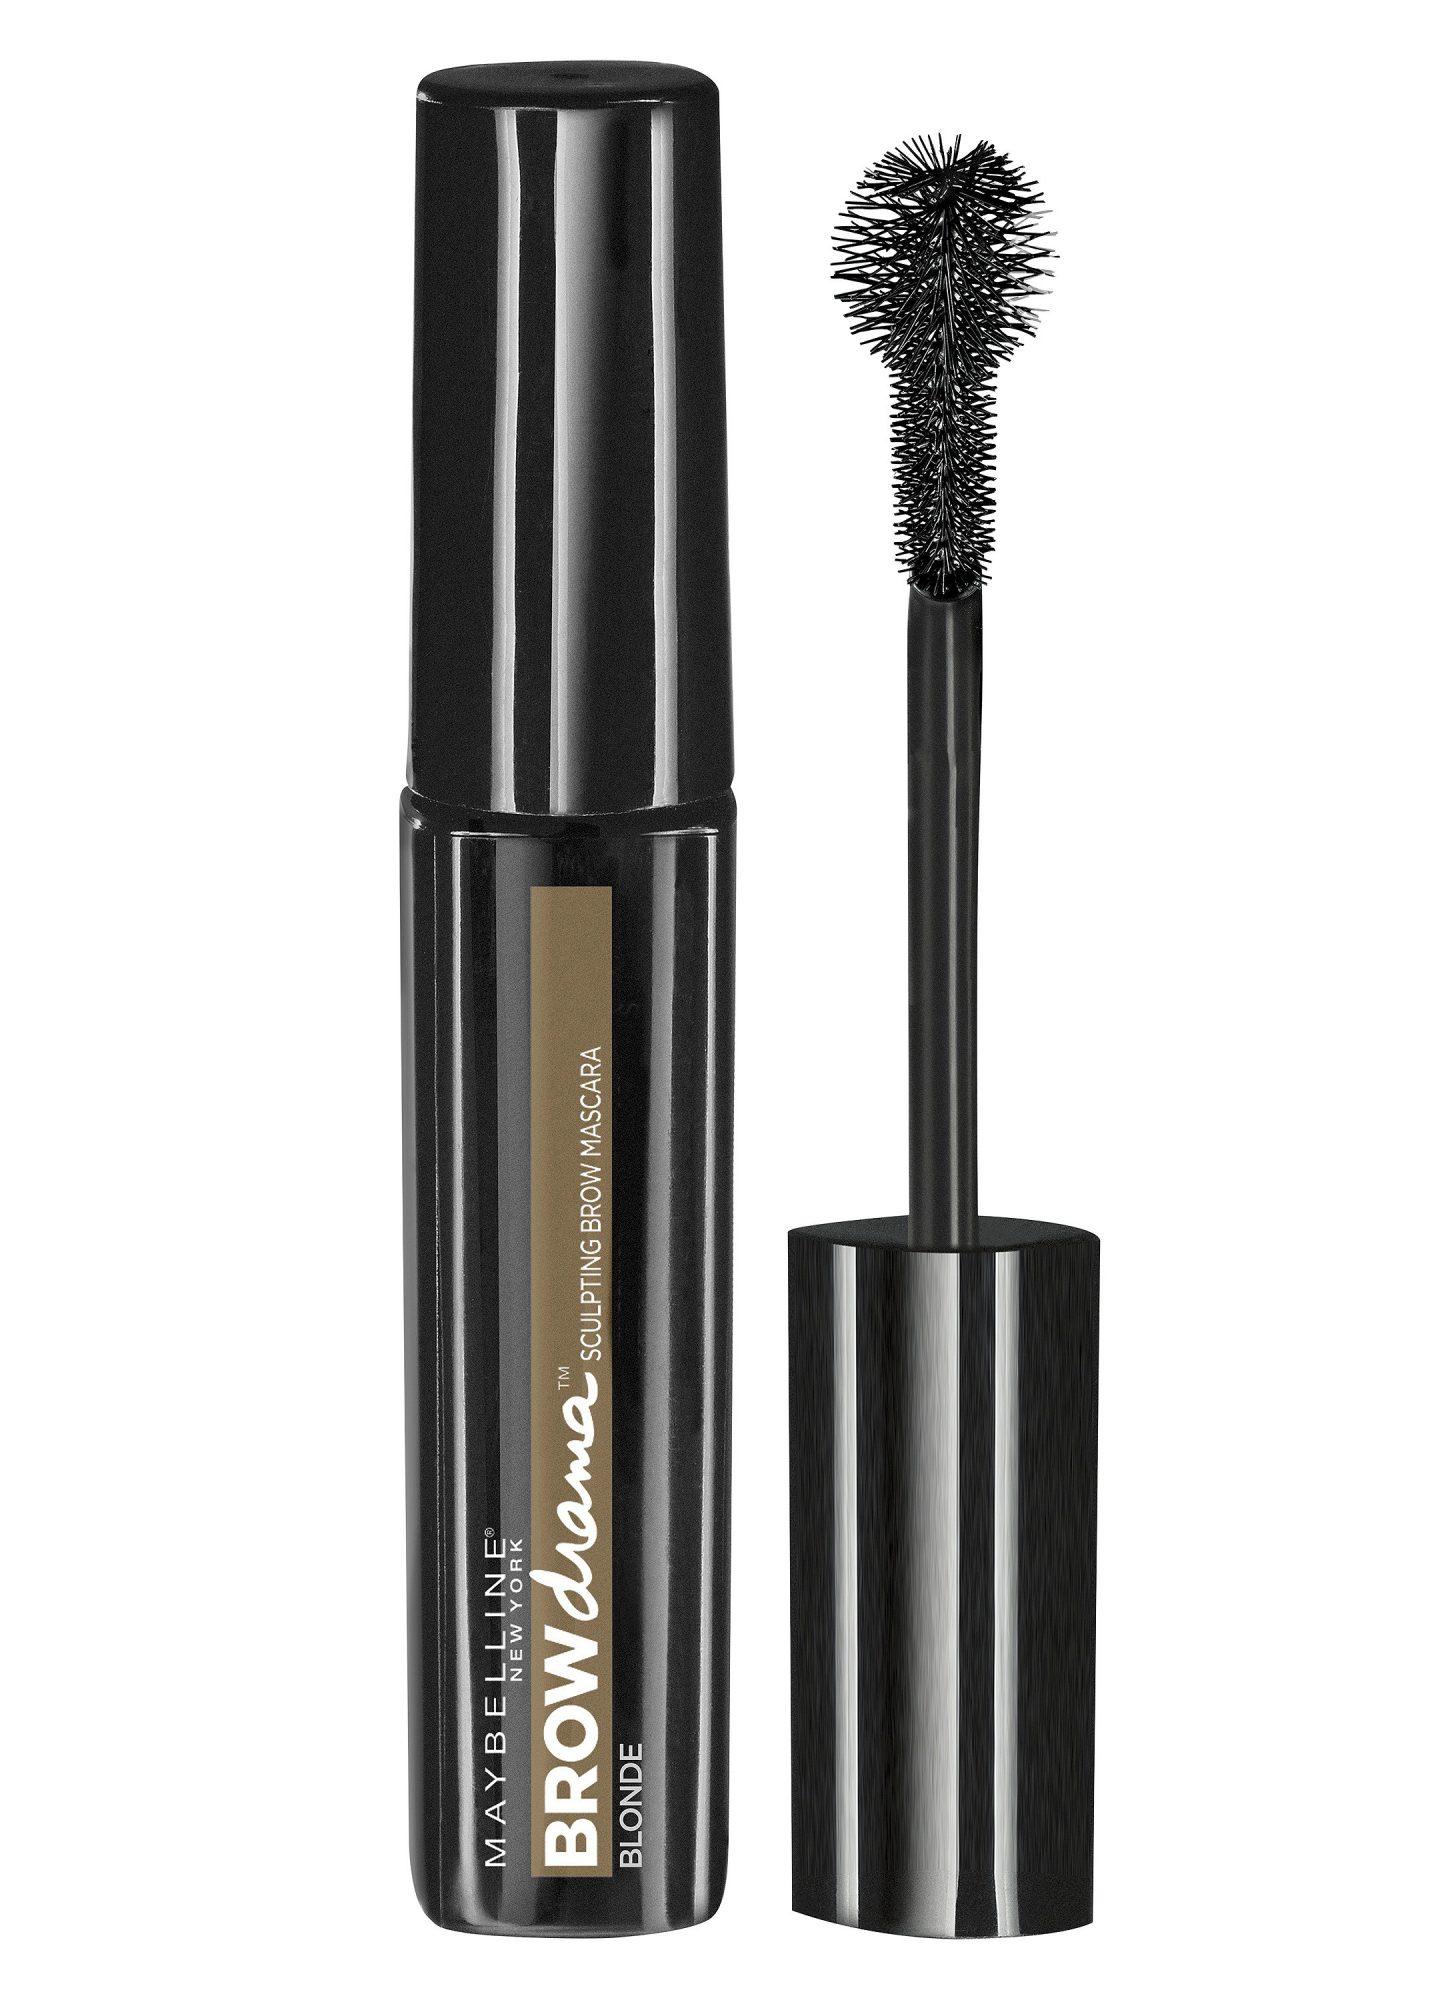 Maybelline New York Eye Studio Brow Drama Sculpting Brow Mascara